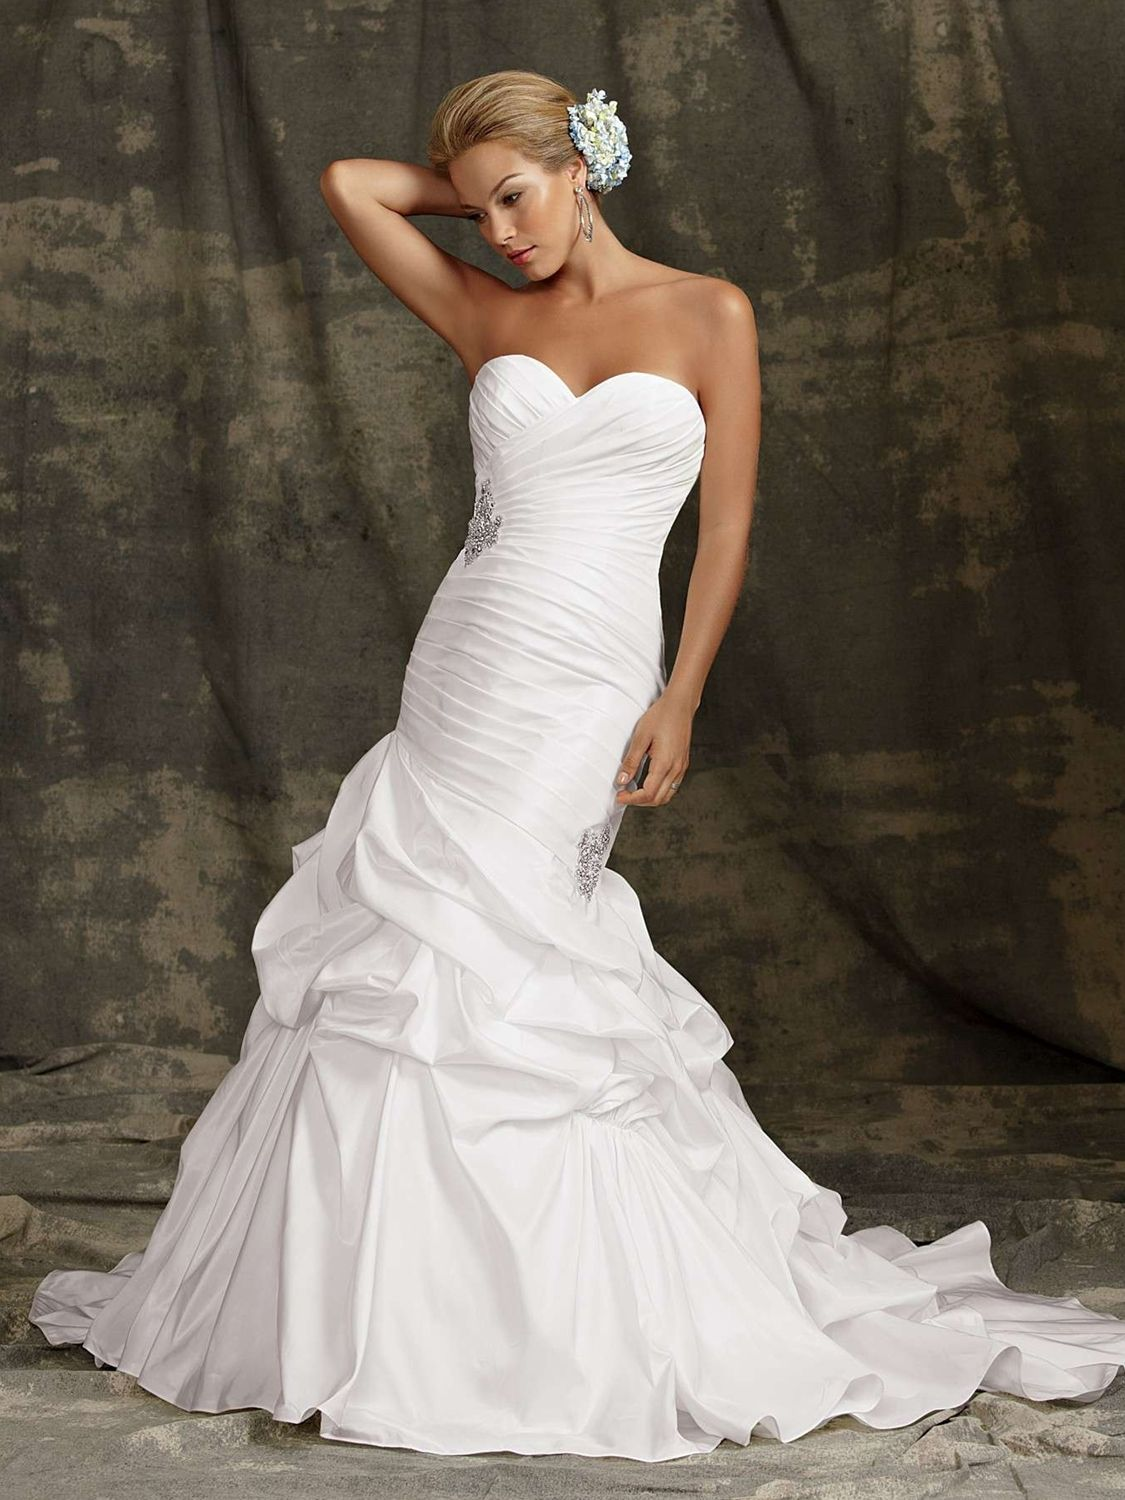 Reflections by jordan wedding dress style nom985 wedding reflections by jordan wedding dress style nom985 ombrellifo Image collections